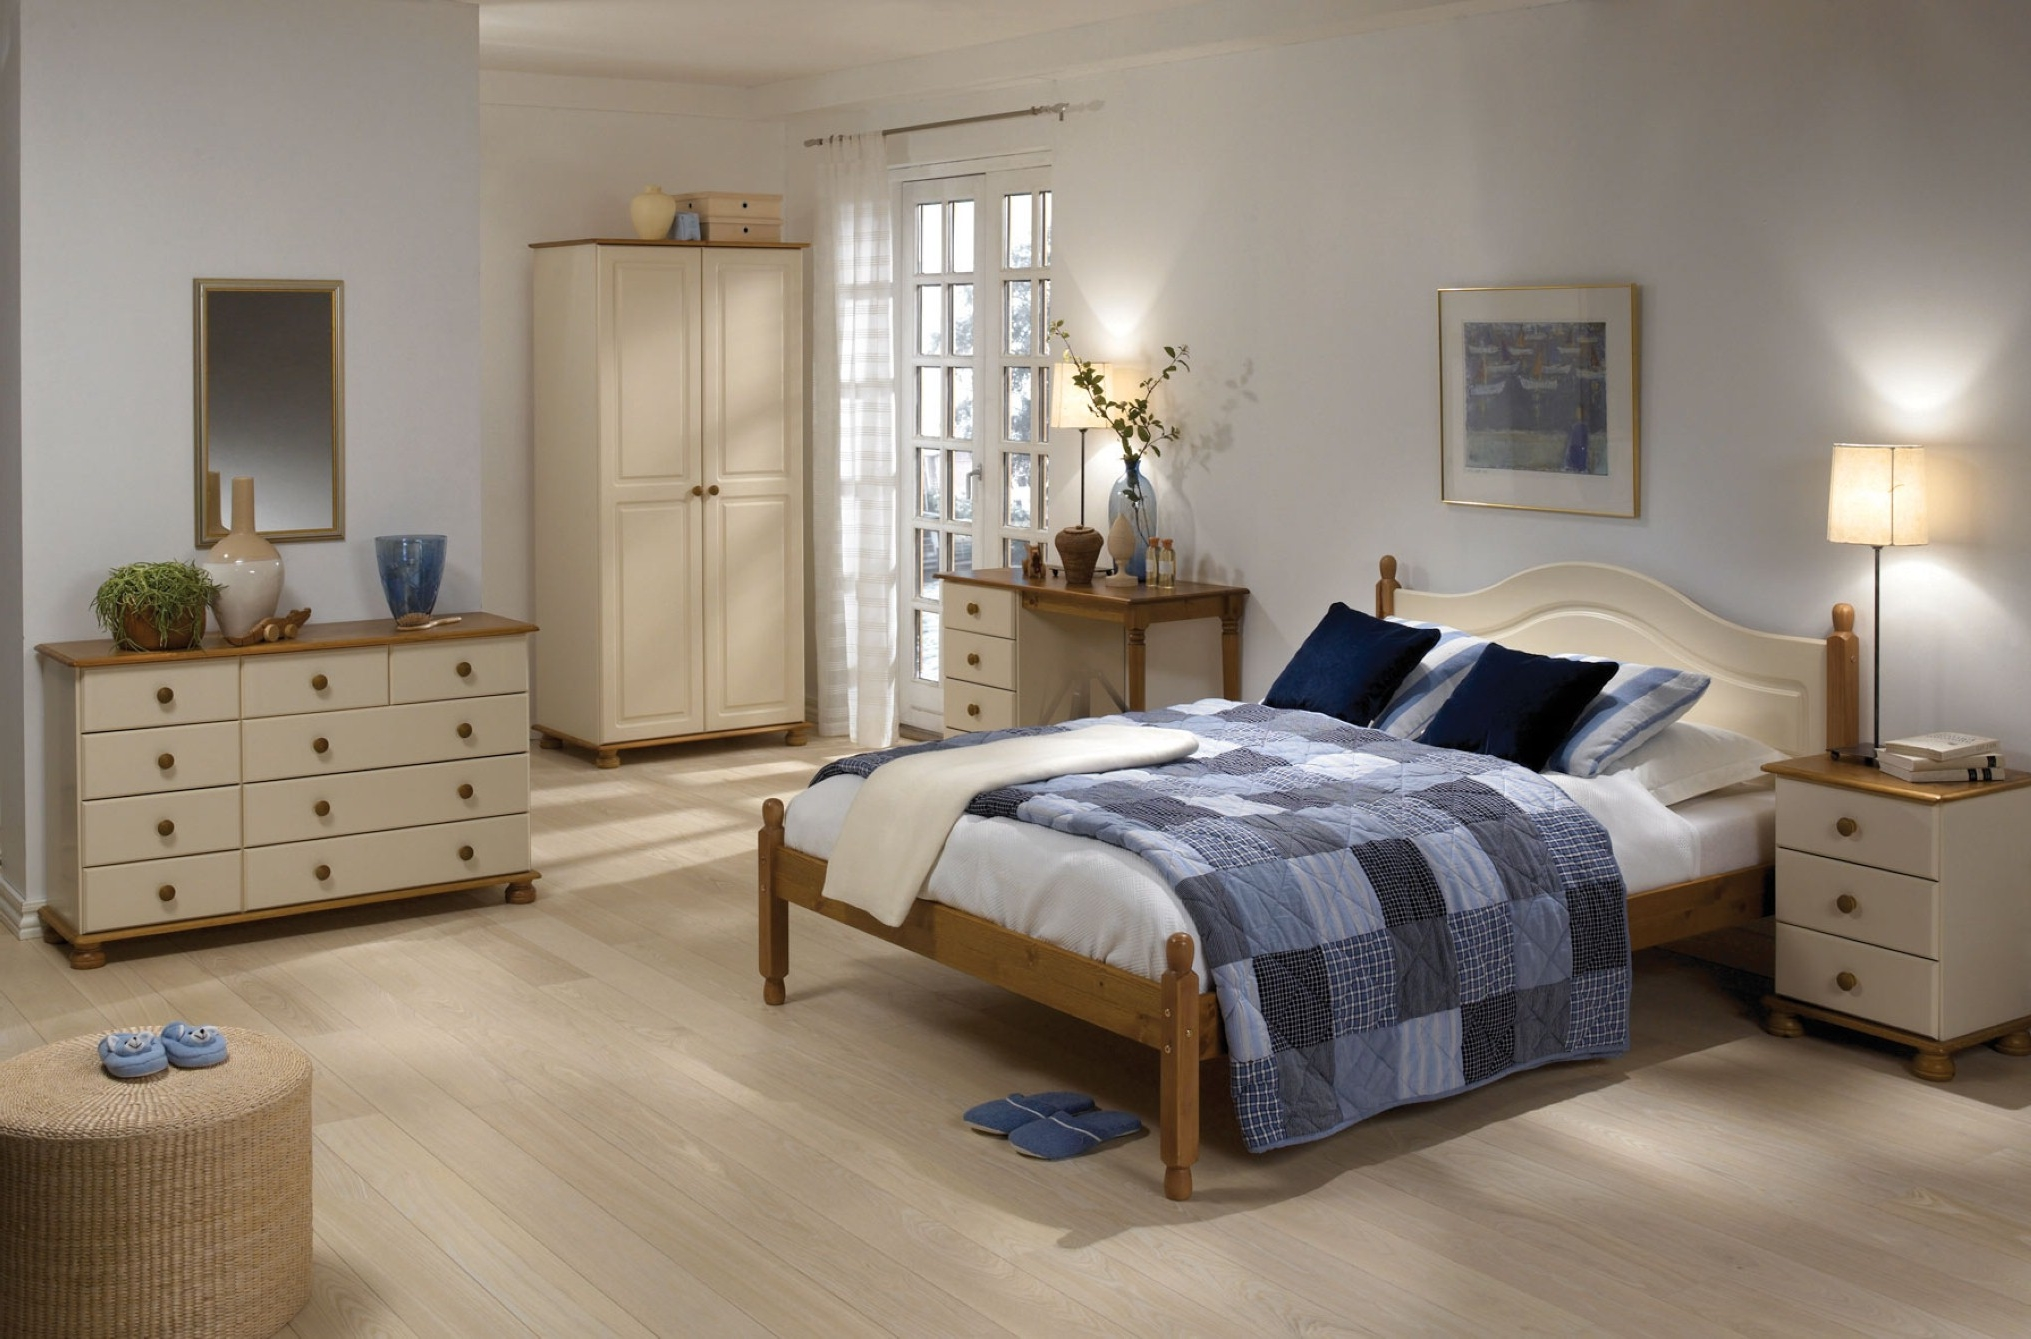 Neat Inspirational Cream Furniture As Modern Bedroom Furniture With Added Design Bedroom And Engaging To Various Settings Layout Of The Room Bedroom Engaging (Image 14 of 21)